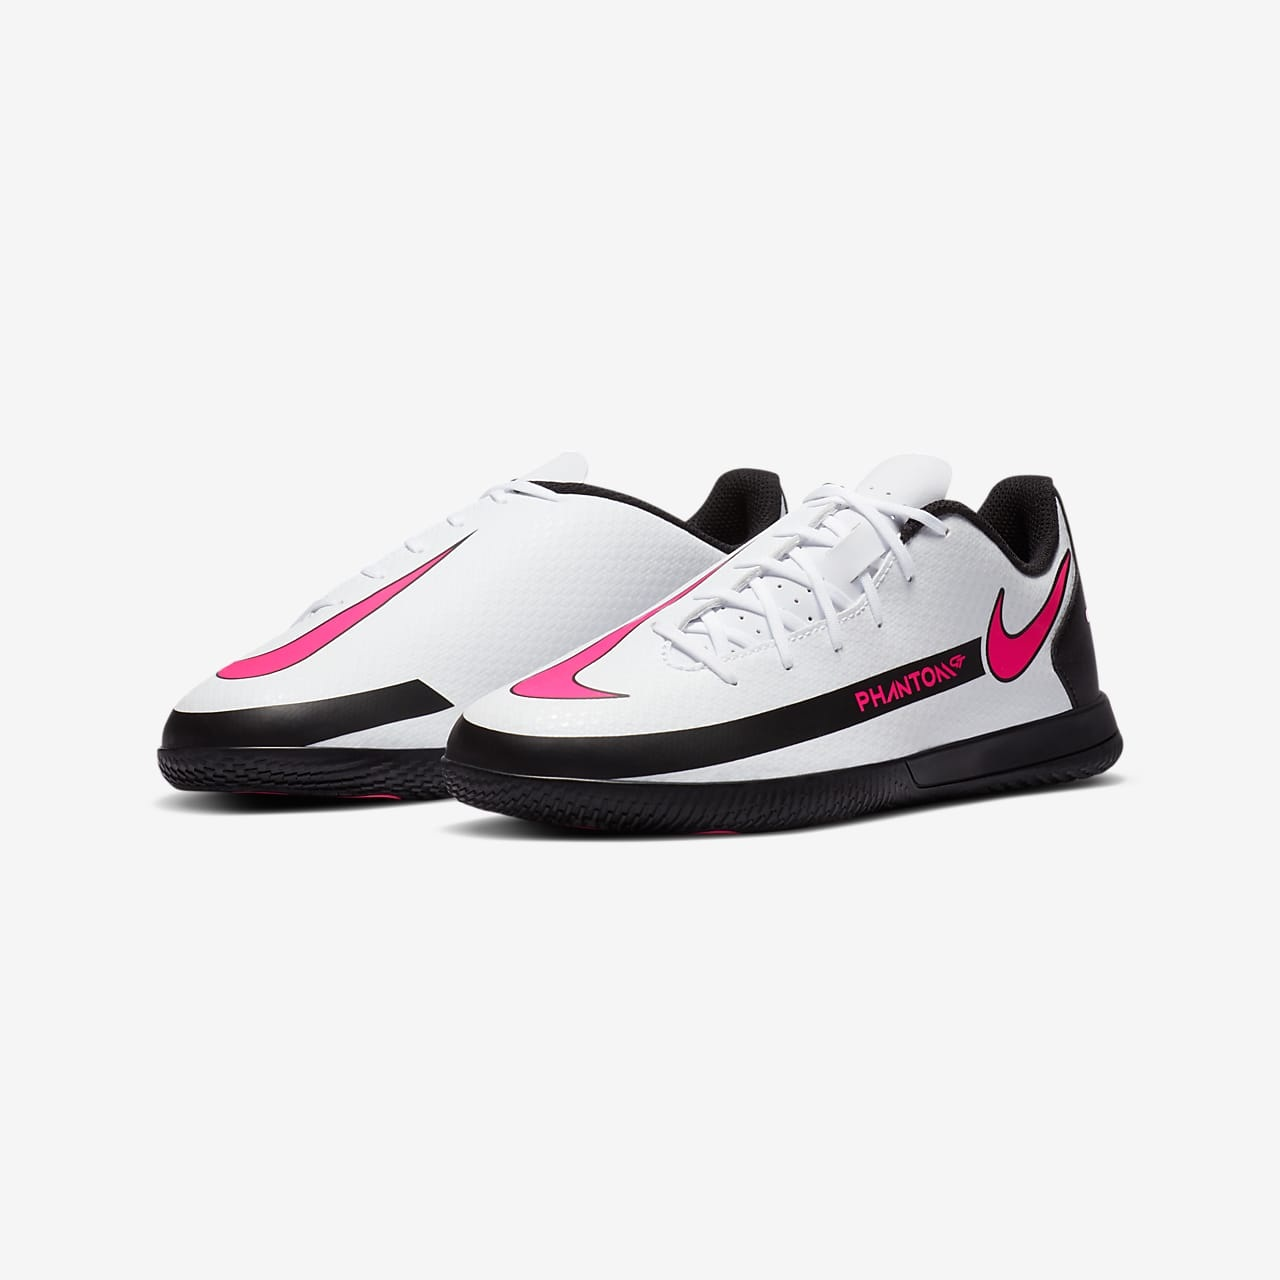 NIKE PHANTOM GT CLUB IC JR CK8481-160